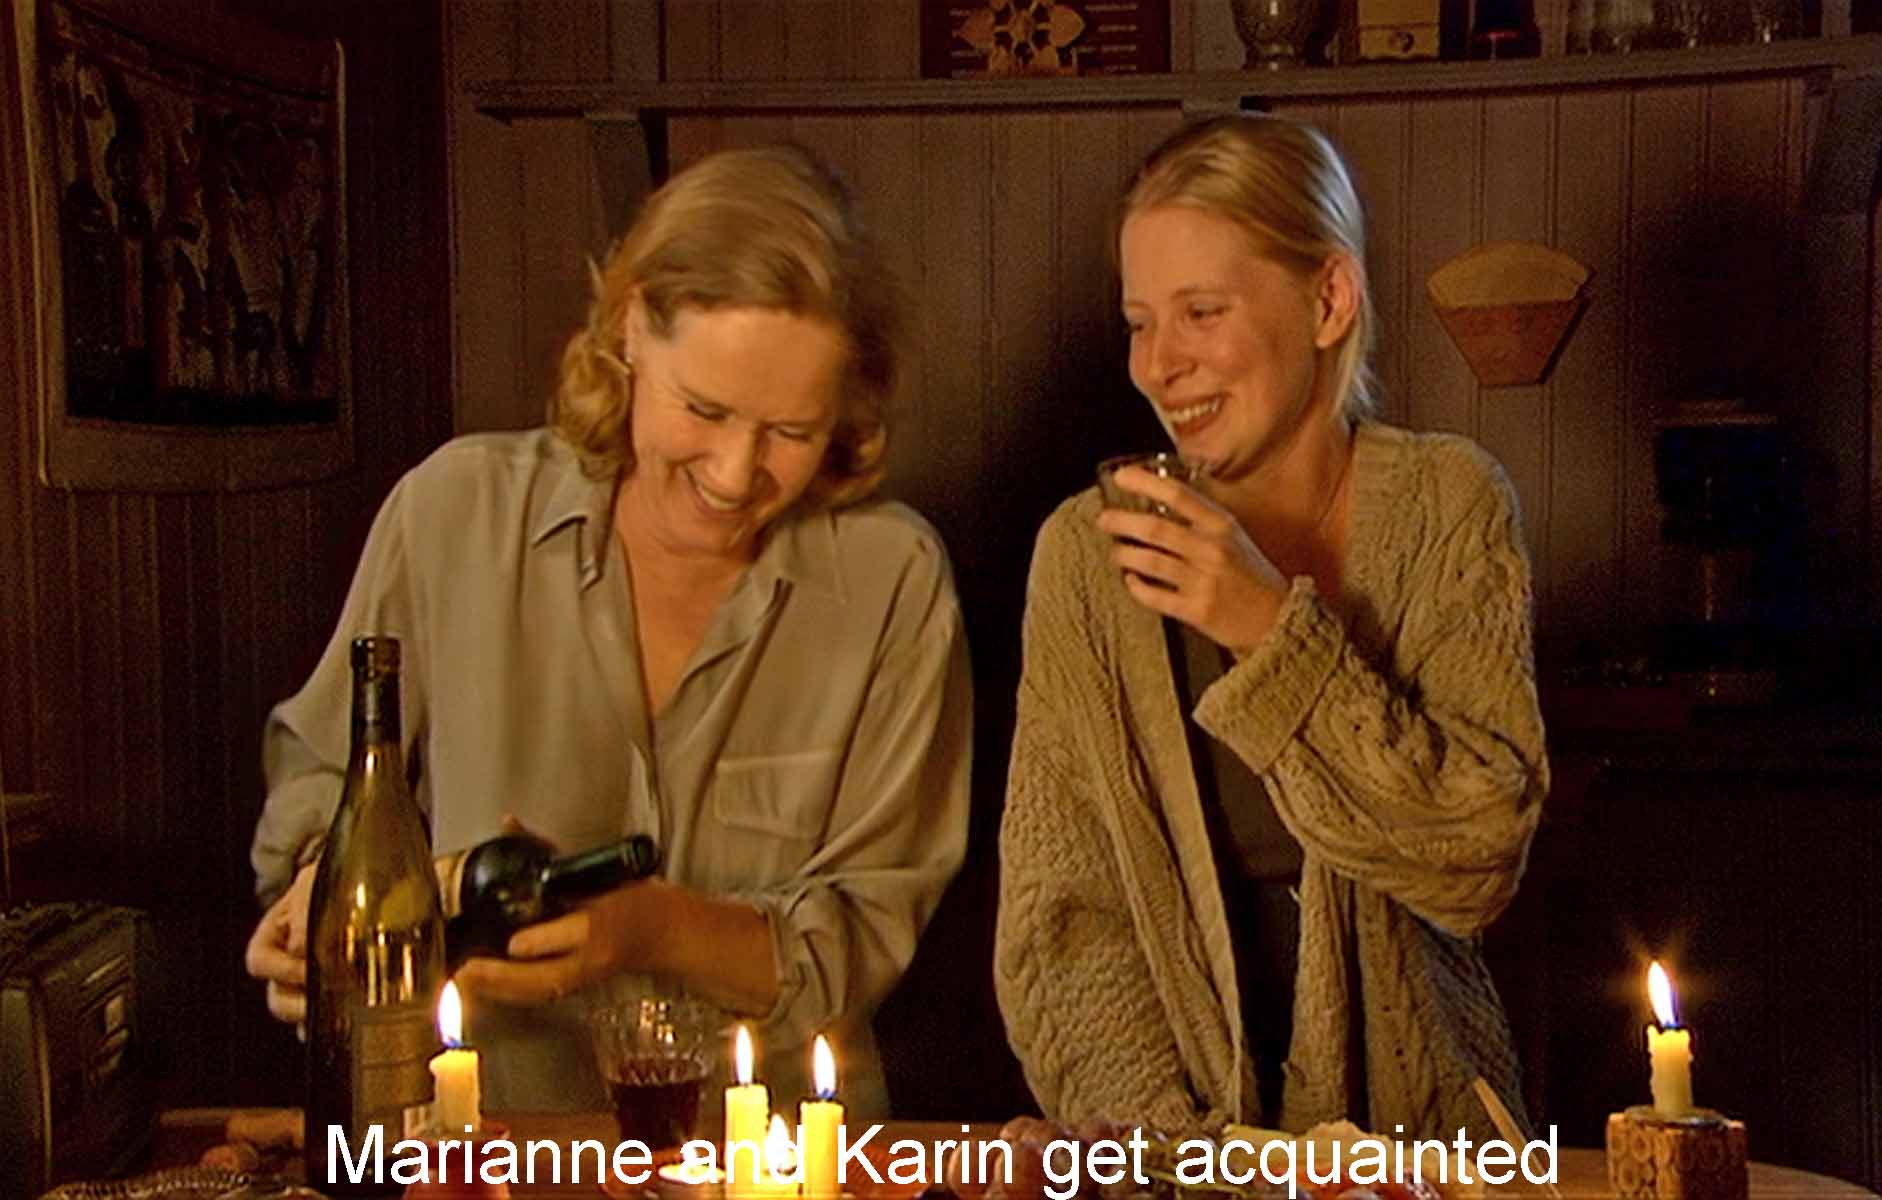 Karin and Marianne get acquainted